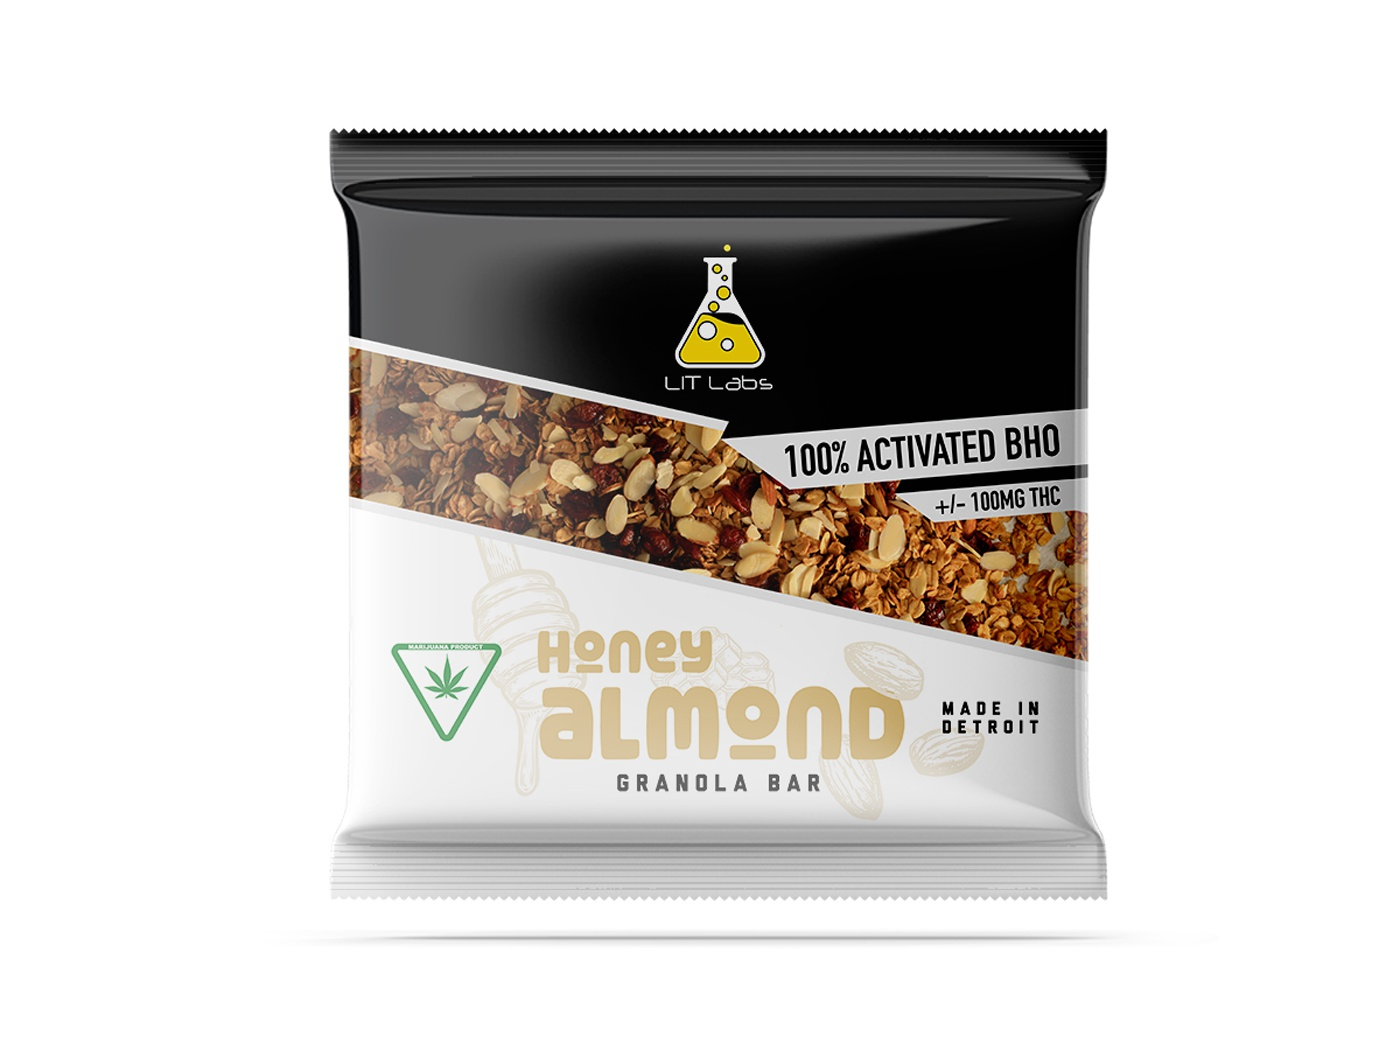 Lit Labs Granola Bar product packaging granola bar thc